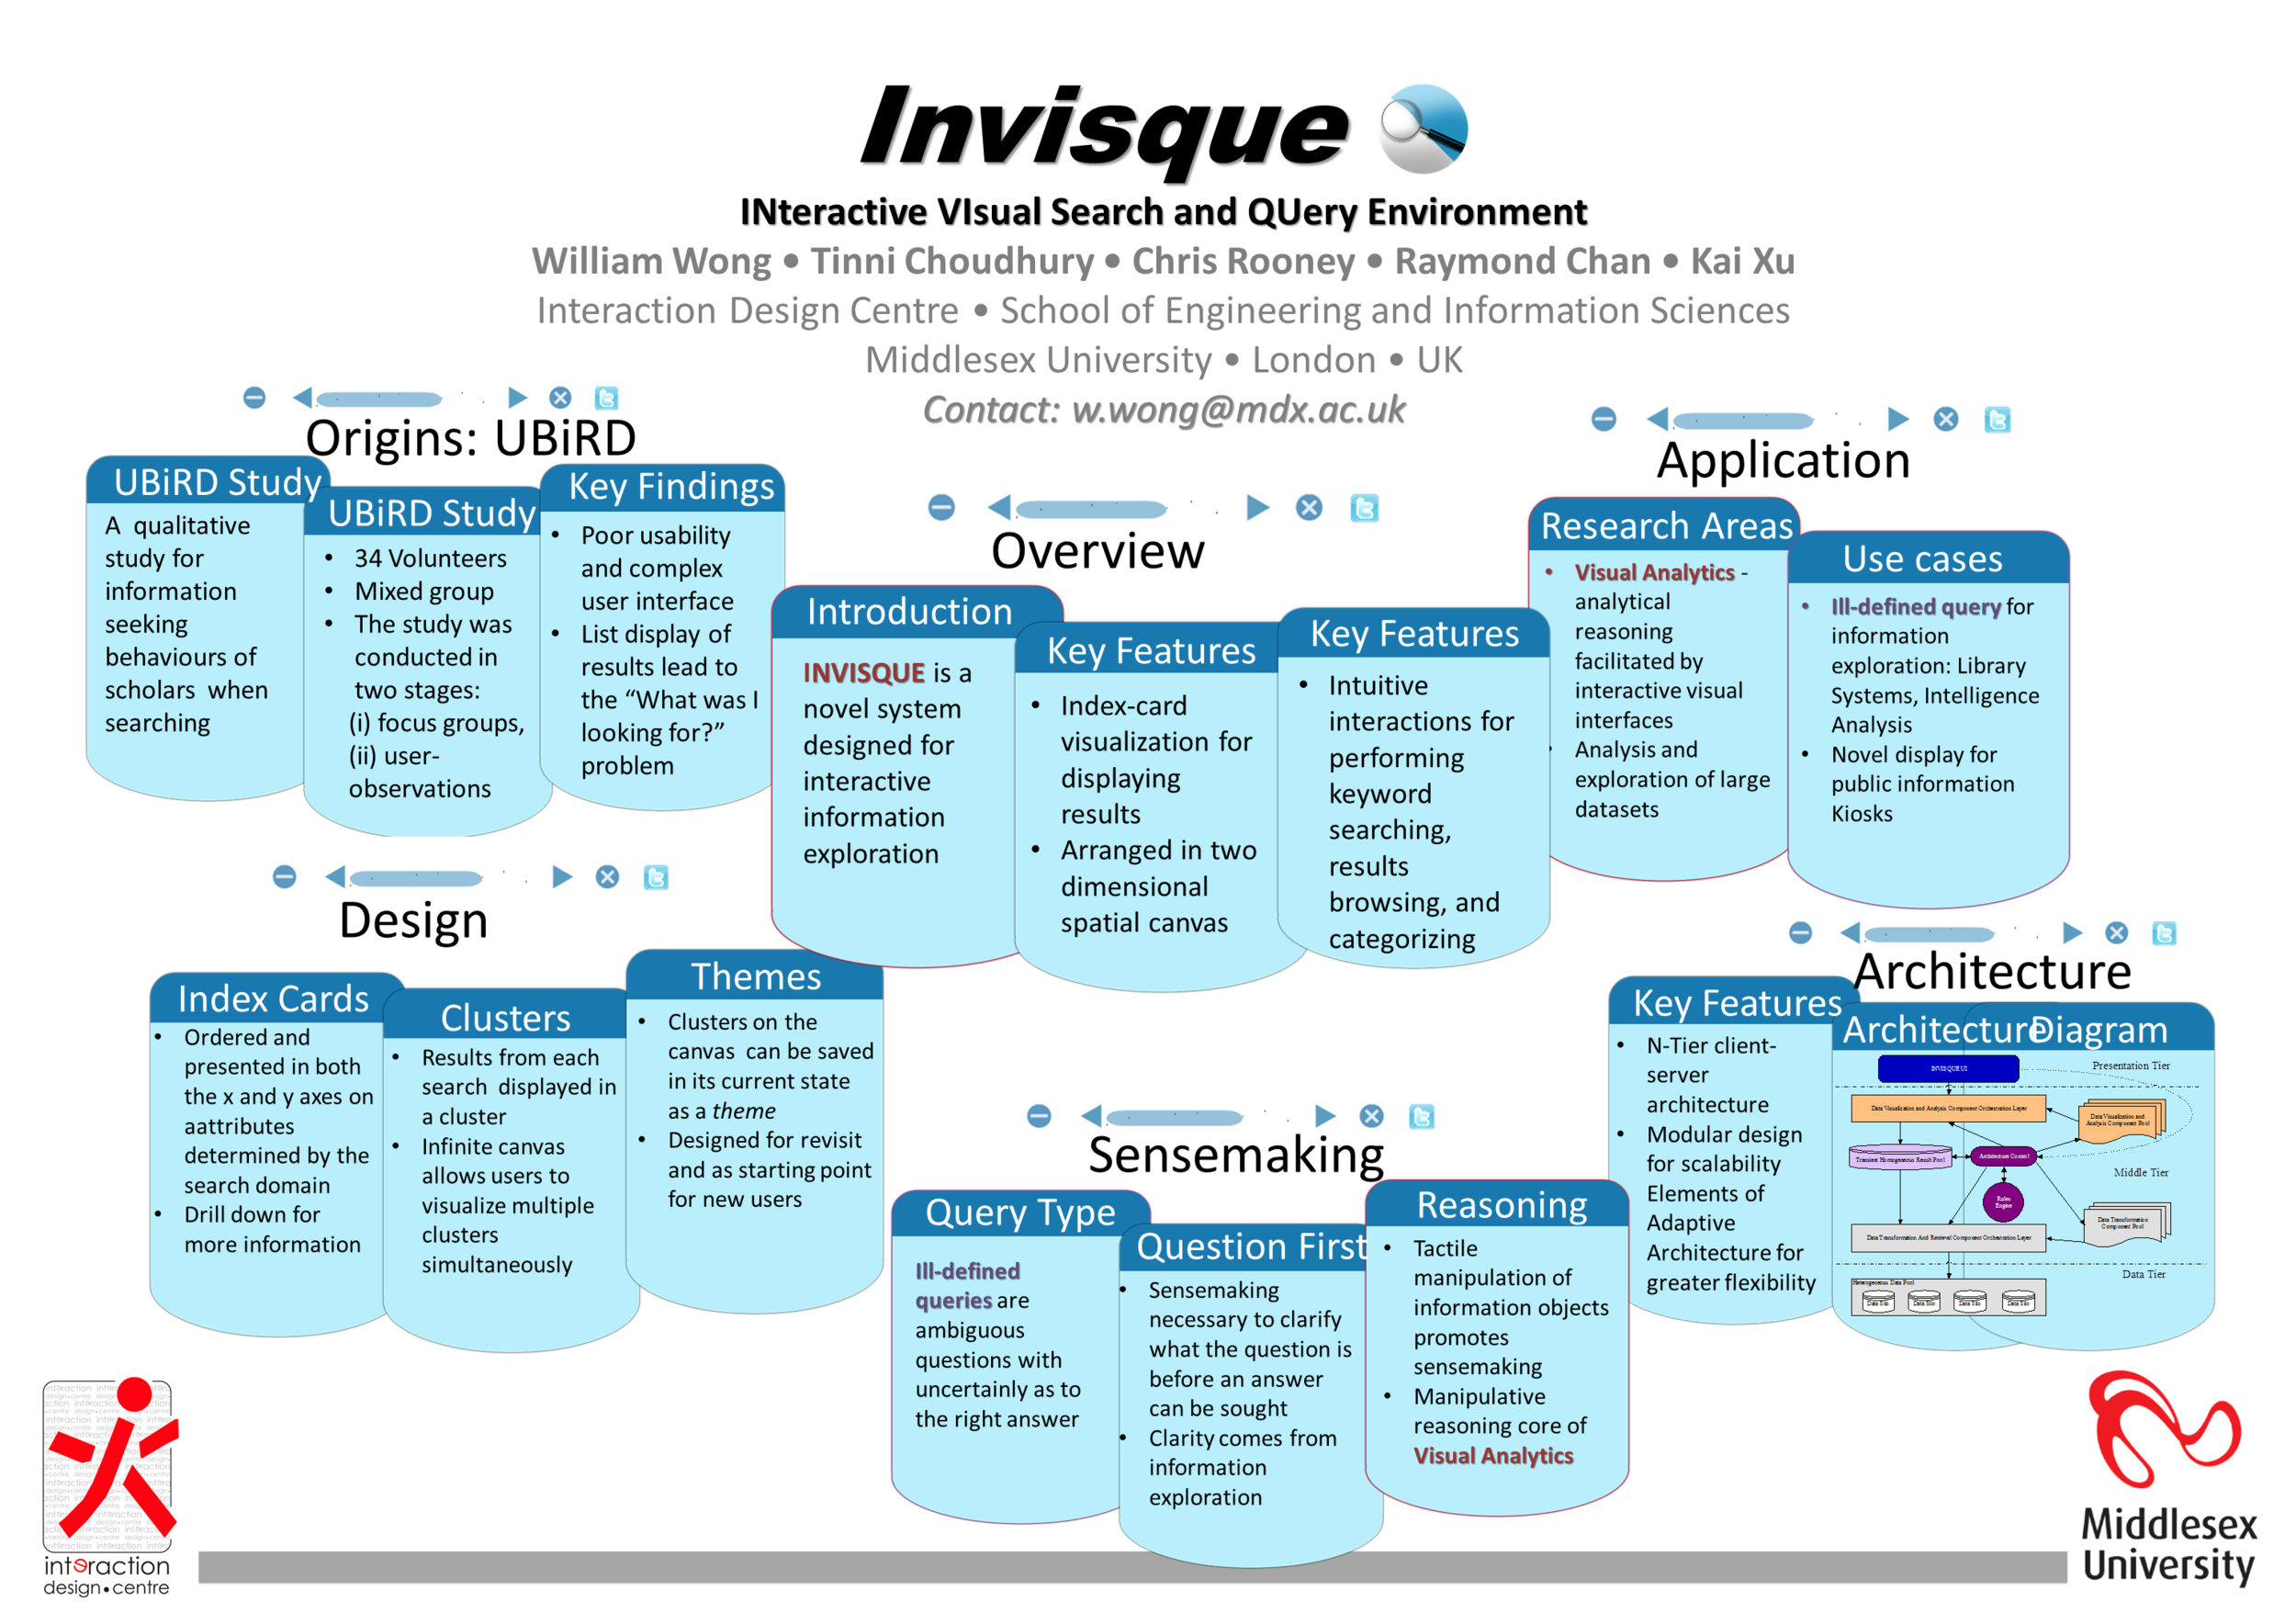 Poster for Invisque made for CHI 2011